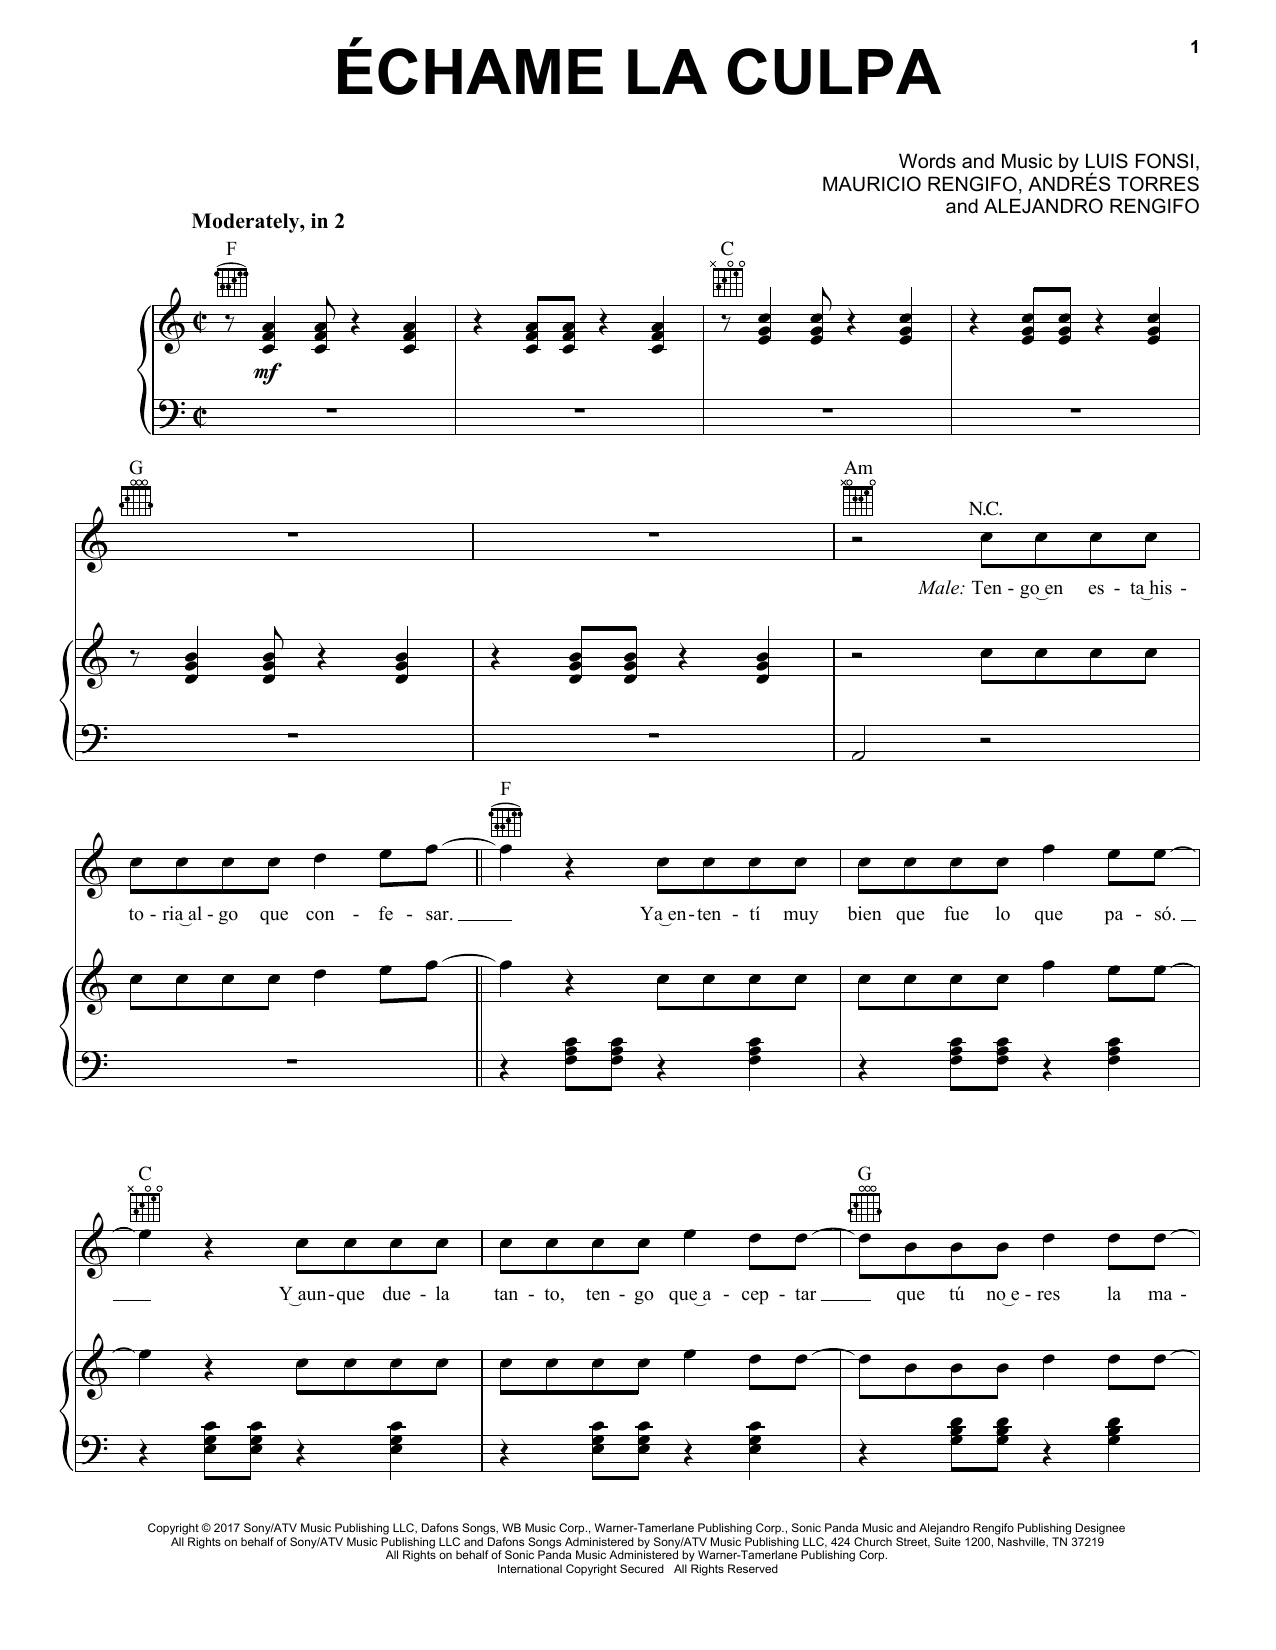 Luis Fonsi and Demi Lovato Echame La Culpa sheet music notes and chords. Download Printable PDF.